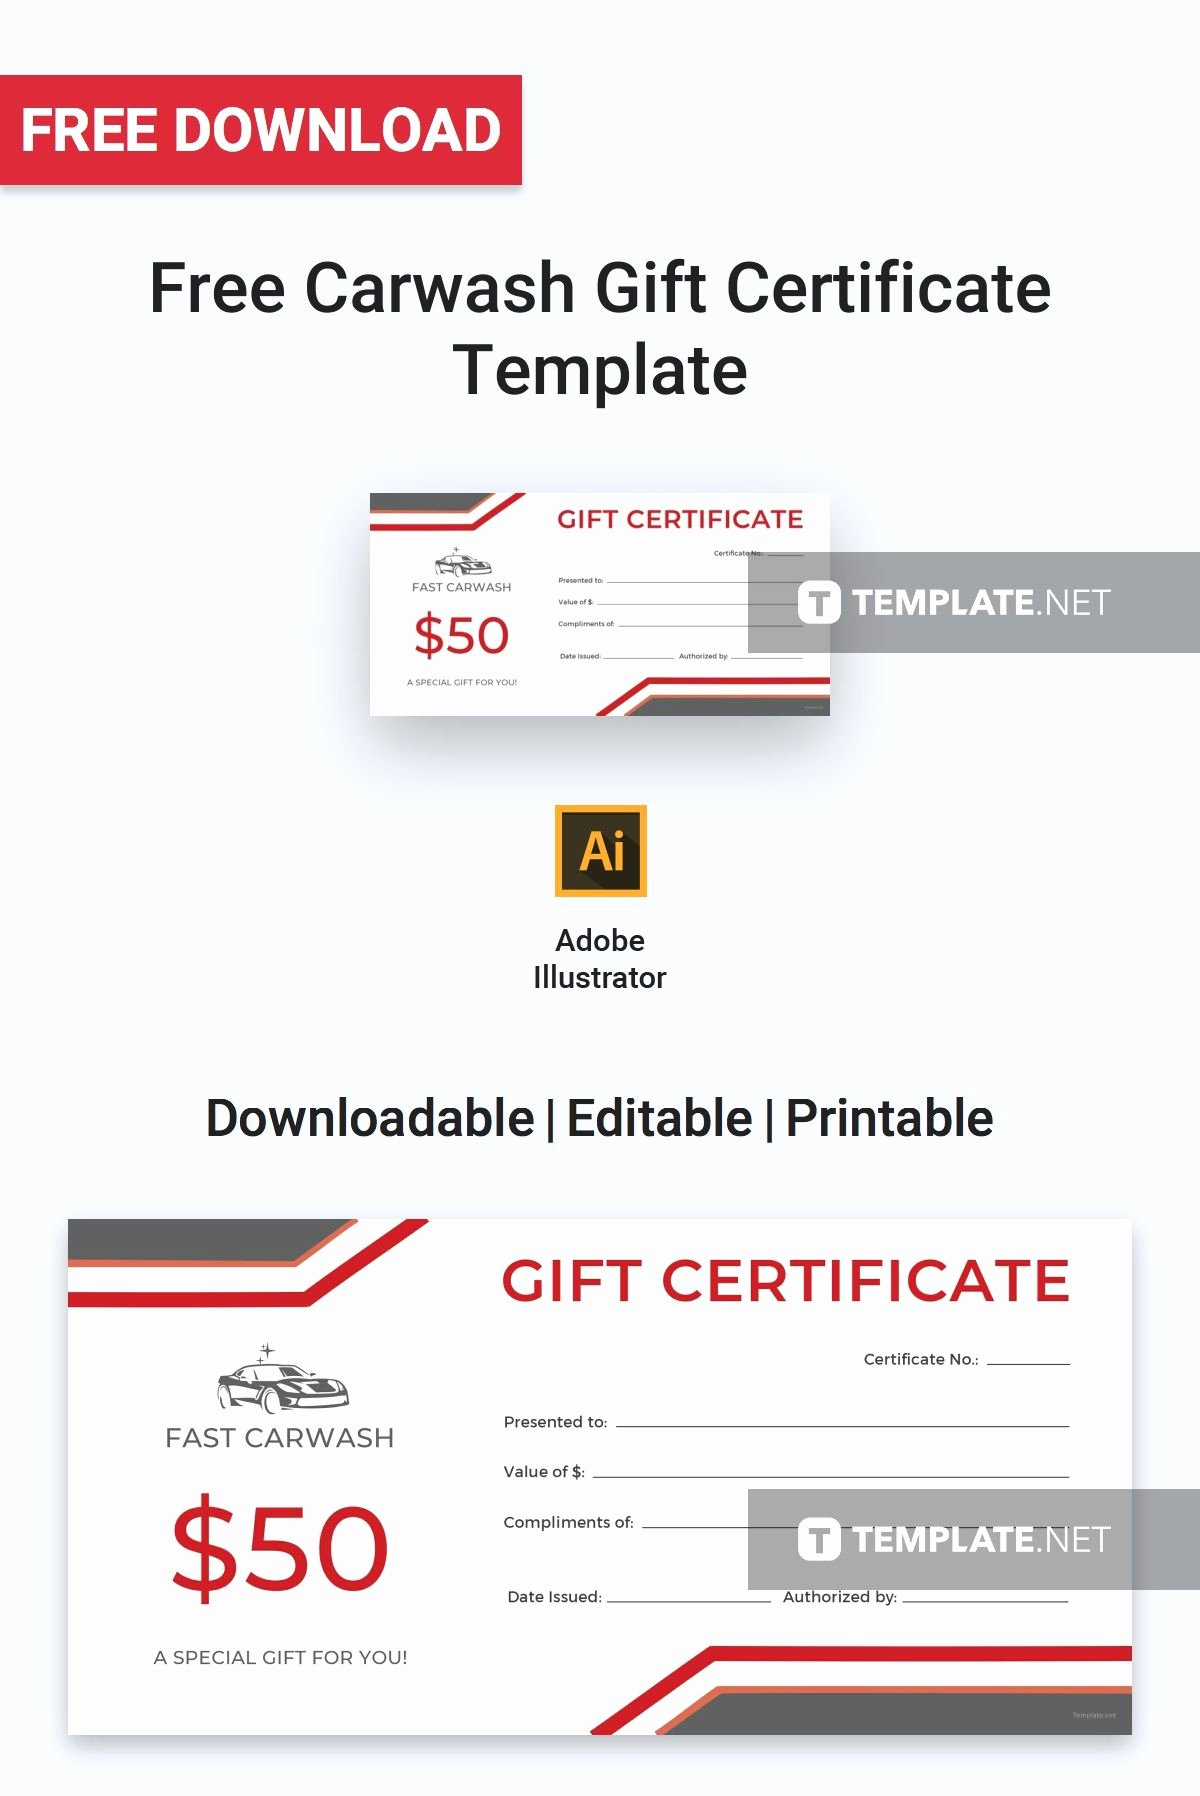 Car Wash Gift Certificate Template Luxury Free Carwash Gift Certificate